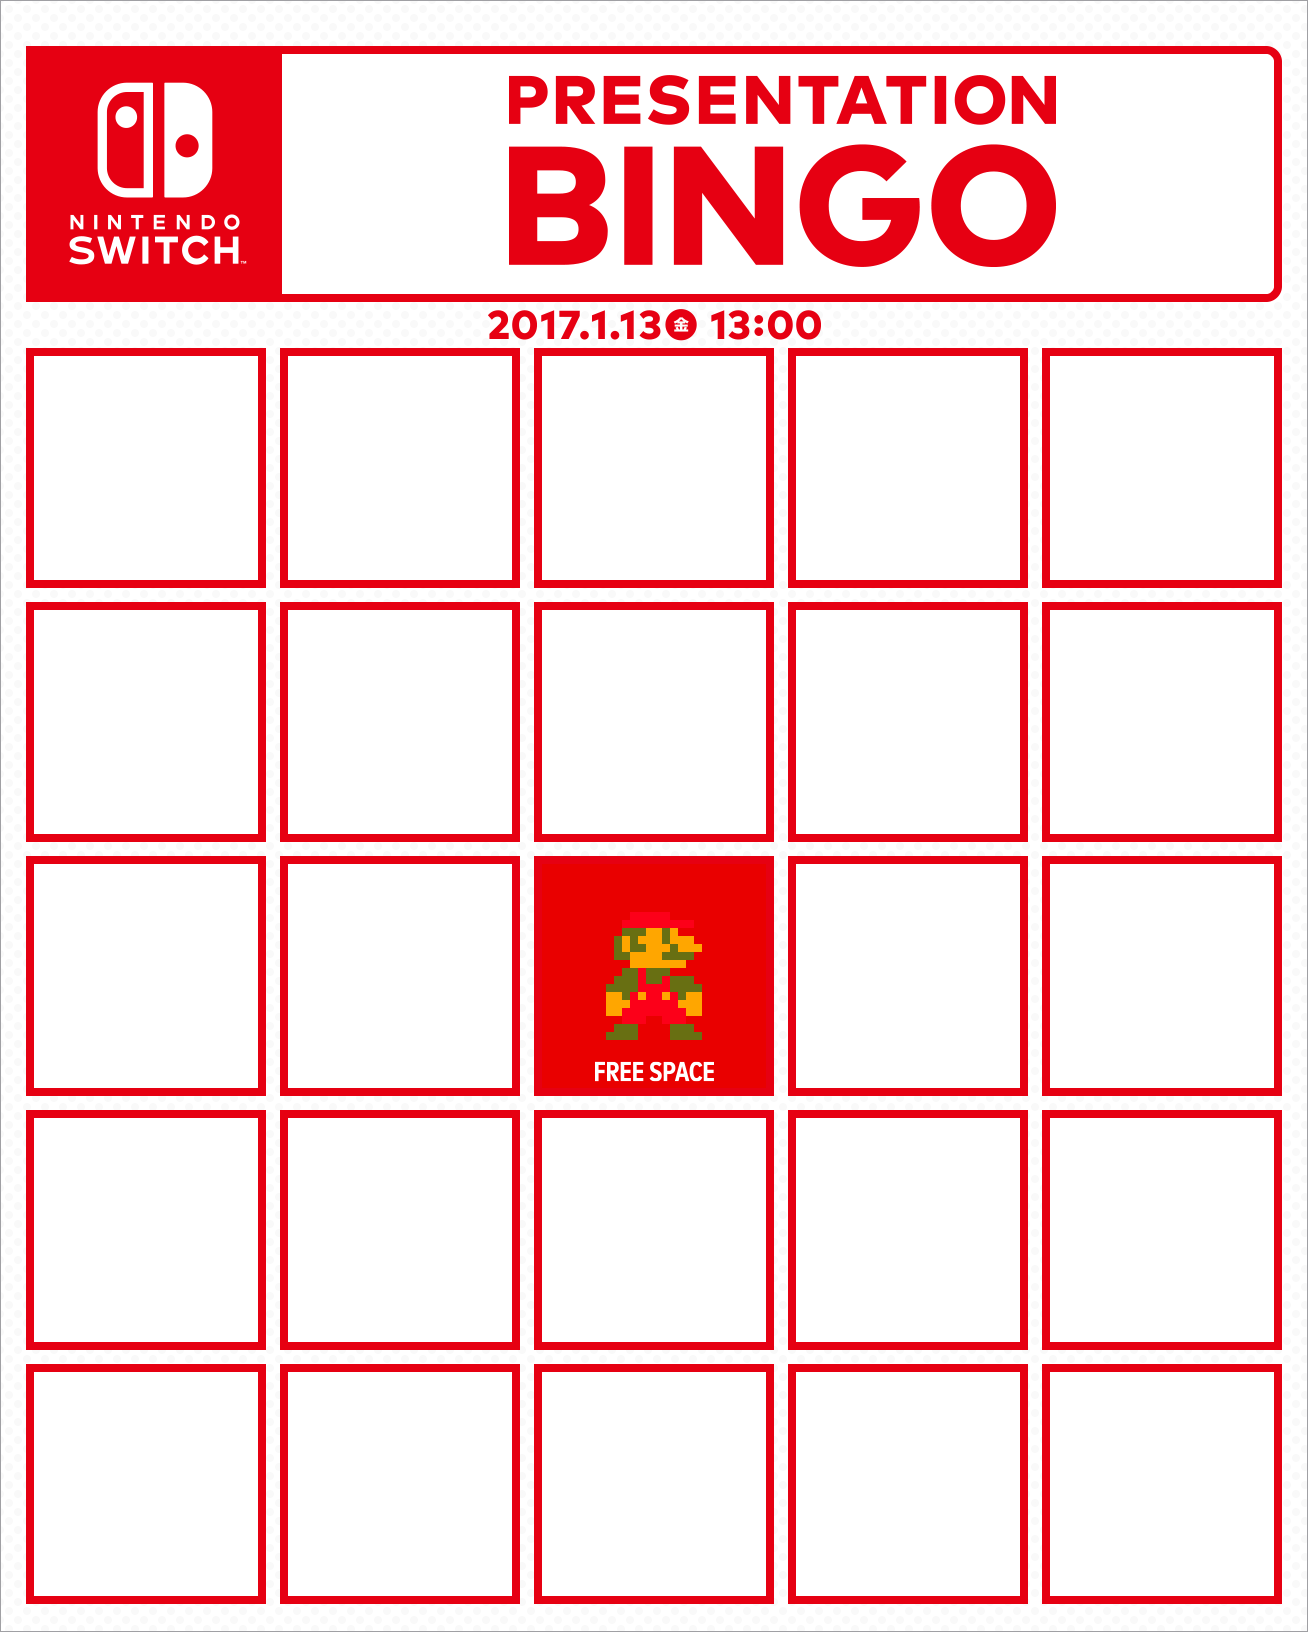 Bingo card megathread nintendoswitch want to make your own bingo card for the presentation heres a blank one solutioingenieria Images